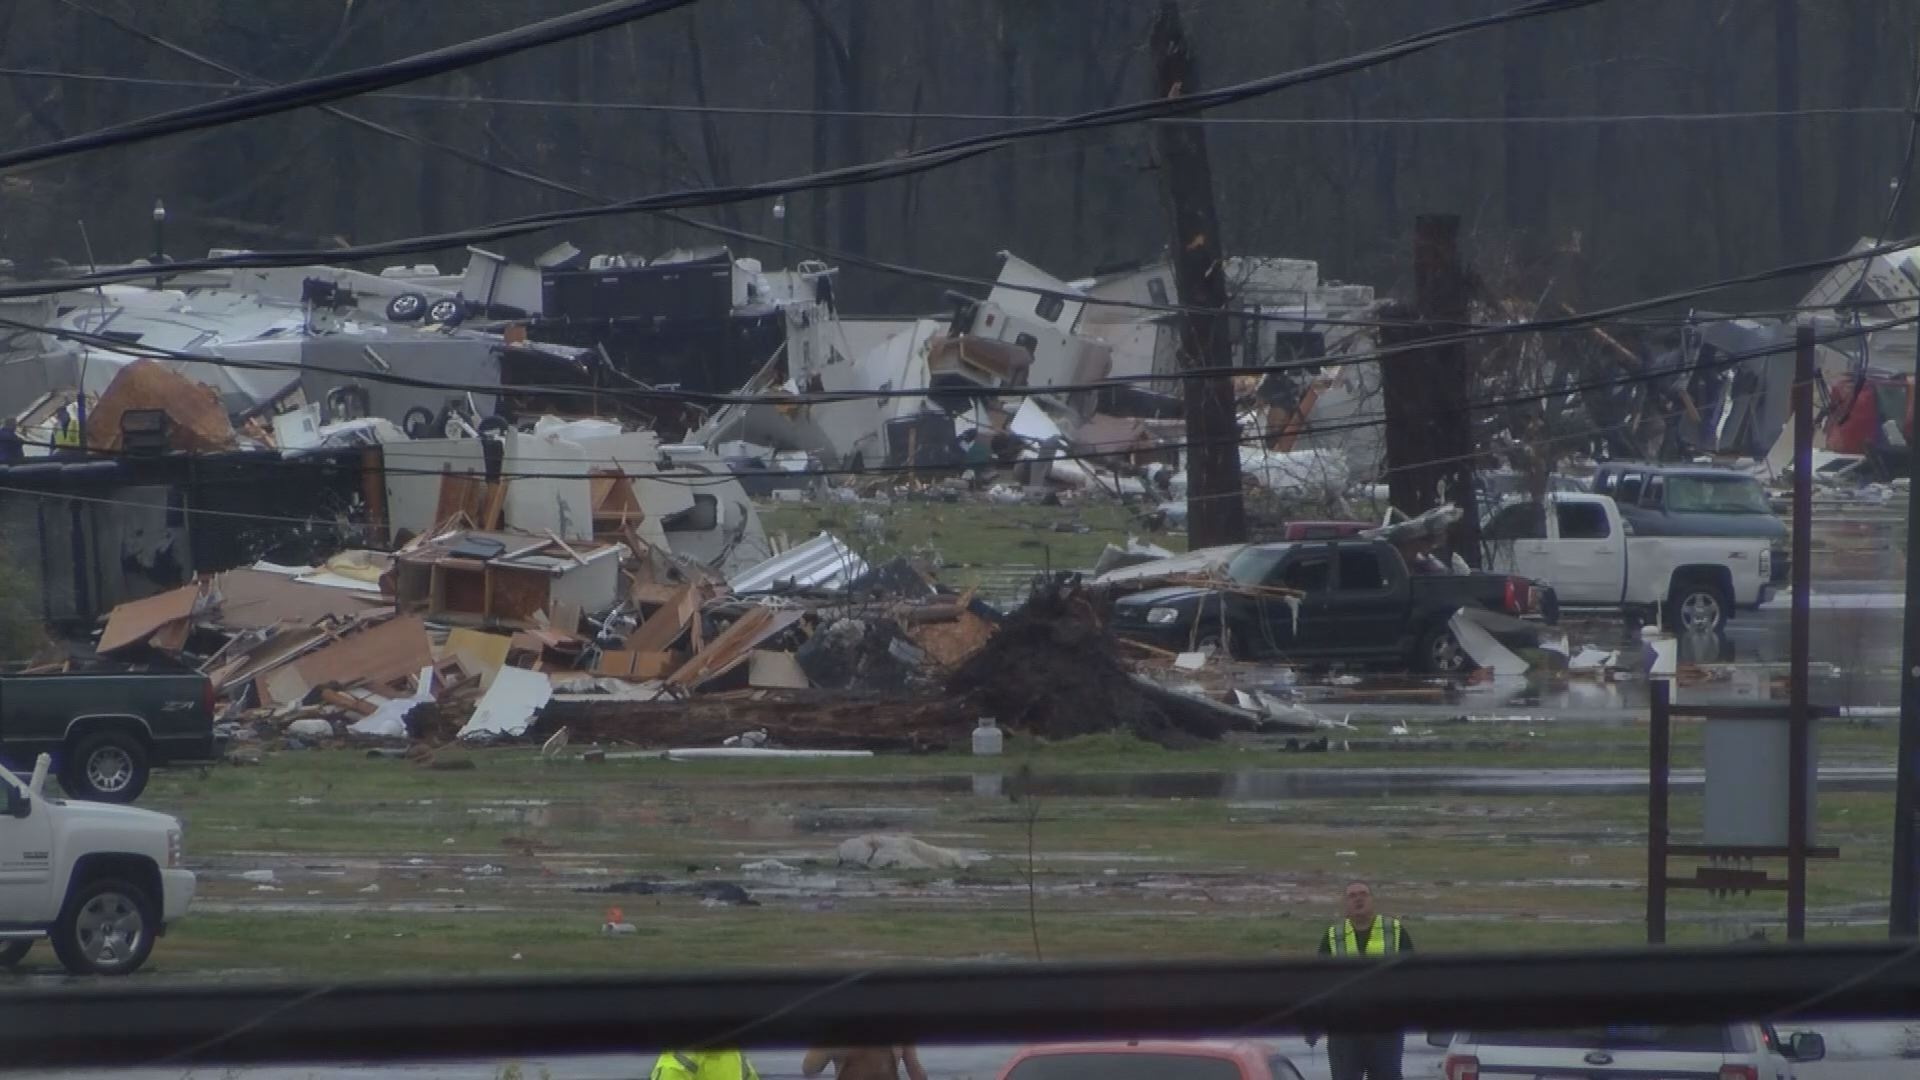 Gut-wrenching picture of the leveled mobile home park in Convent after a #tornado via @FOX8NOLA. #LAwx https://t.co/QIuya7kr8C